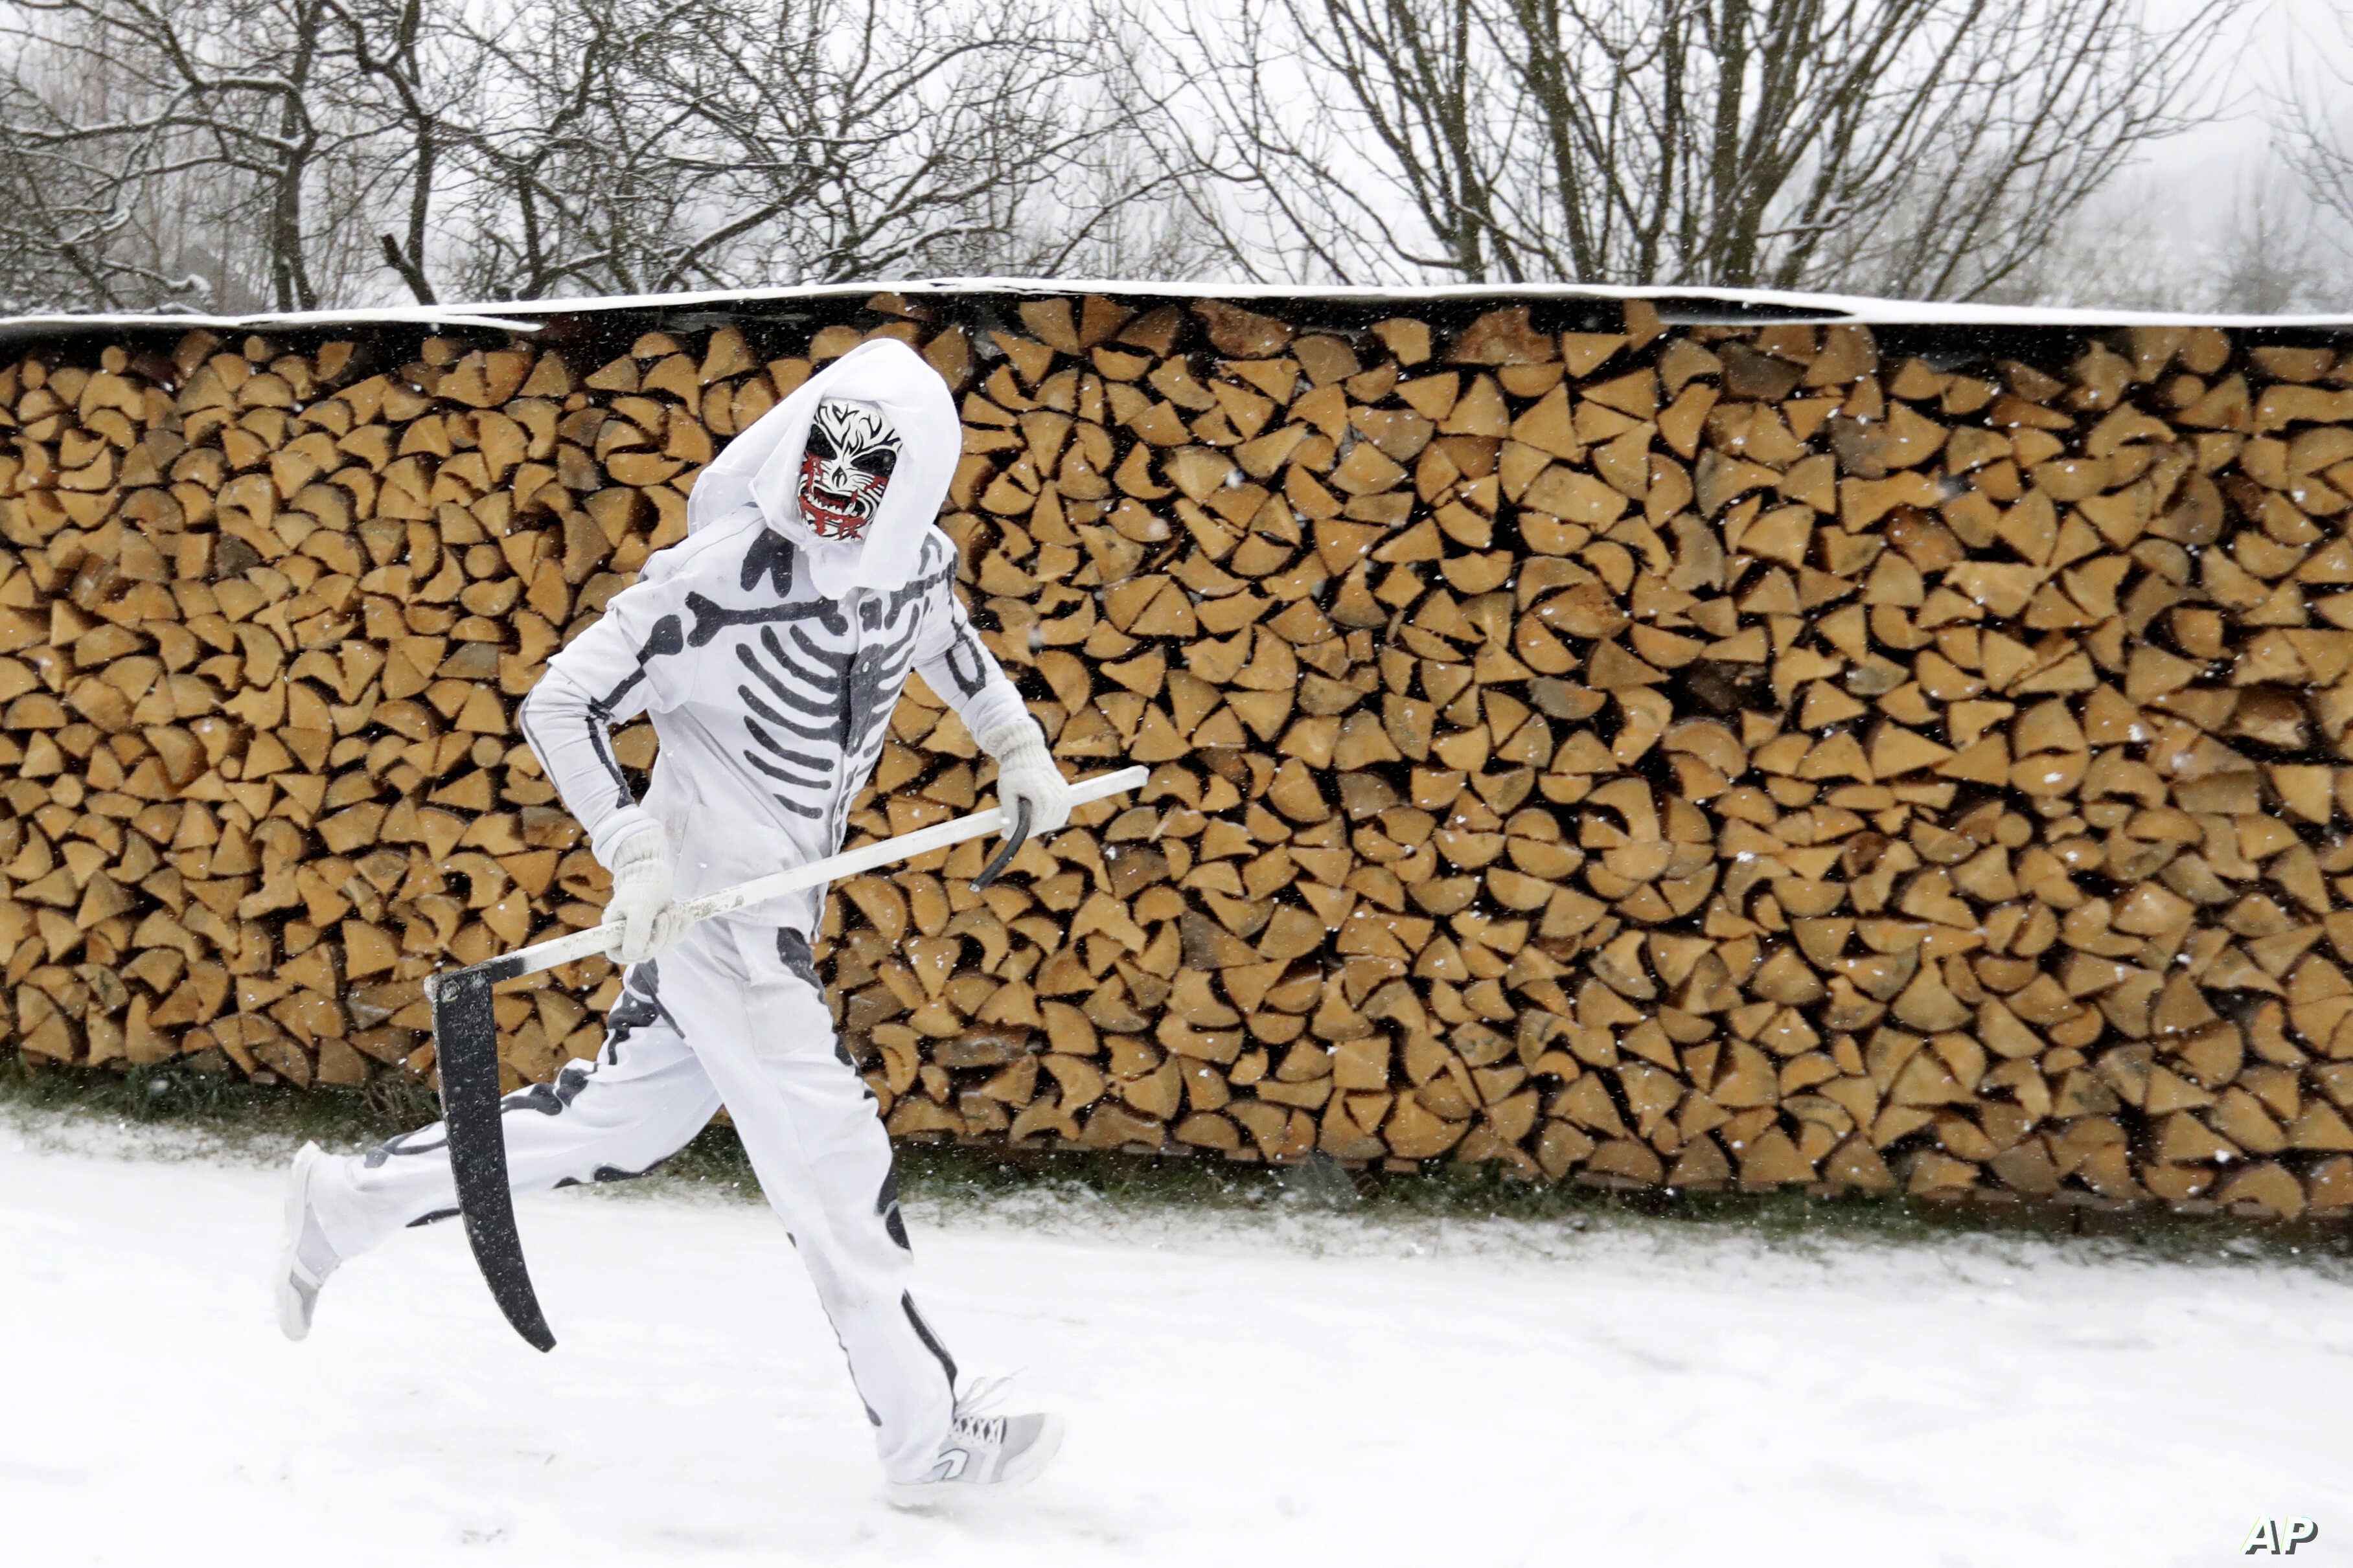 A reveler depicting a grim reaper runs during a traditional St. Nicholas procession in the village of Valasska Polanka, Czech Republic, Dec. 7, 2019.